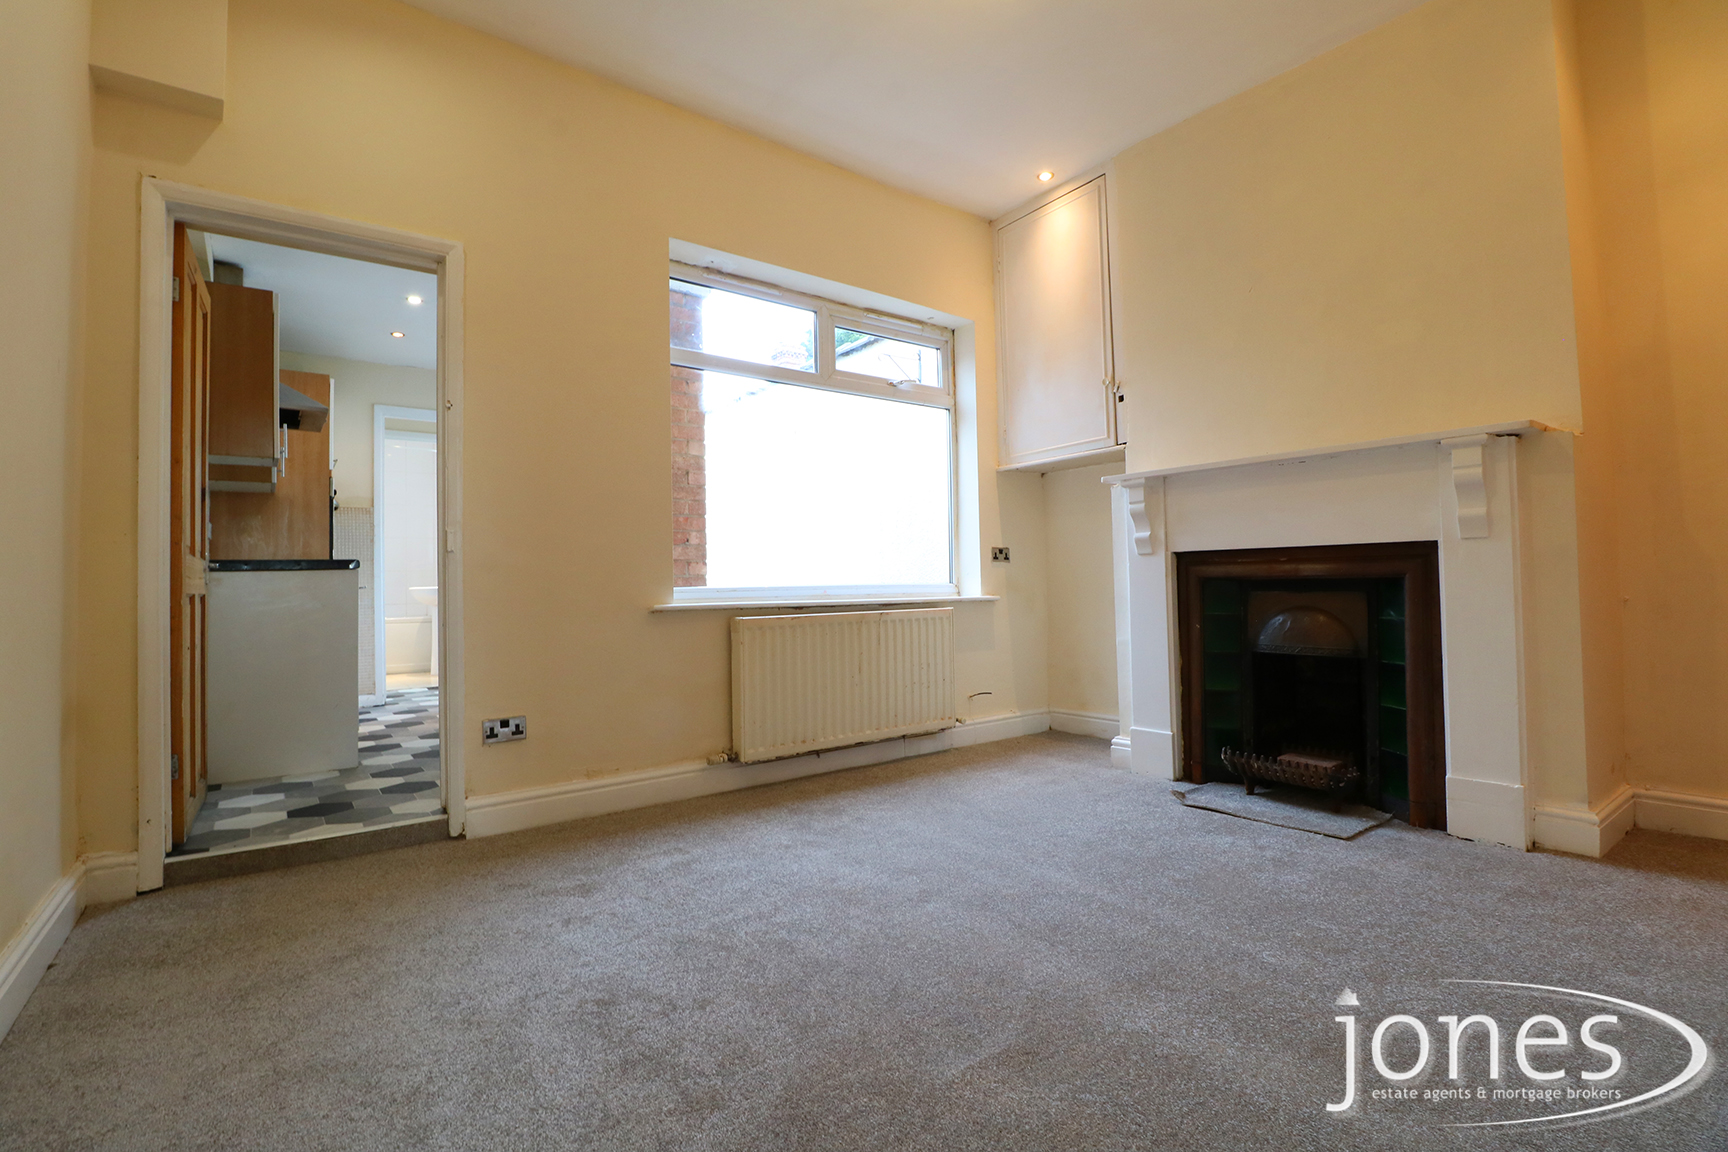 Home for Sale Let - Photo 03 Hallifield Street, Norton, Stockton on Tees, TS20 2HE